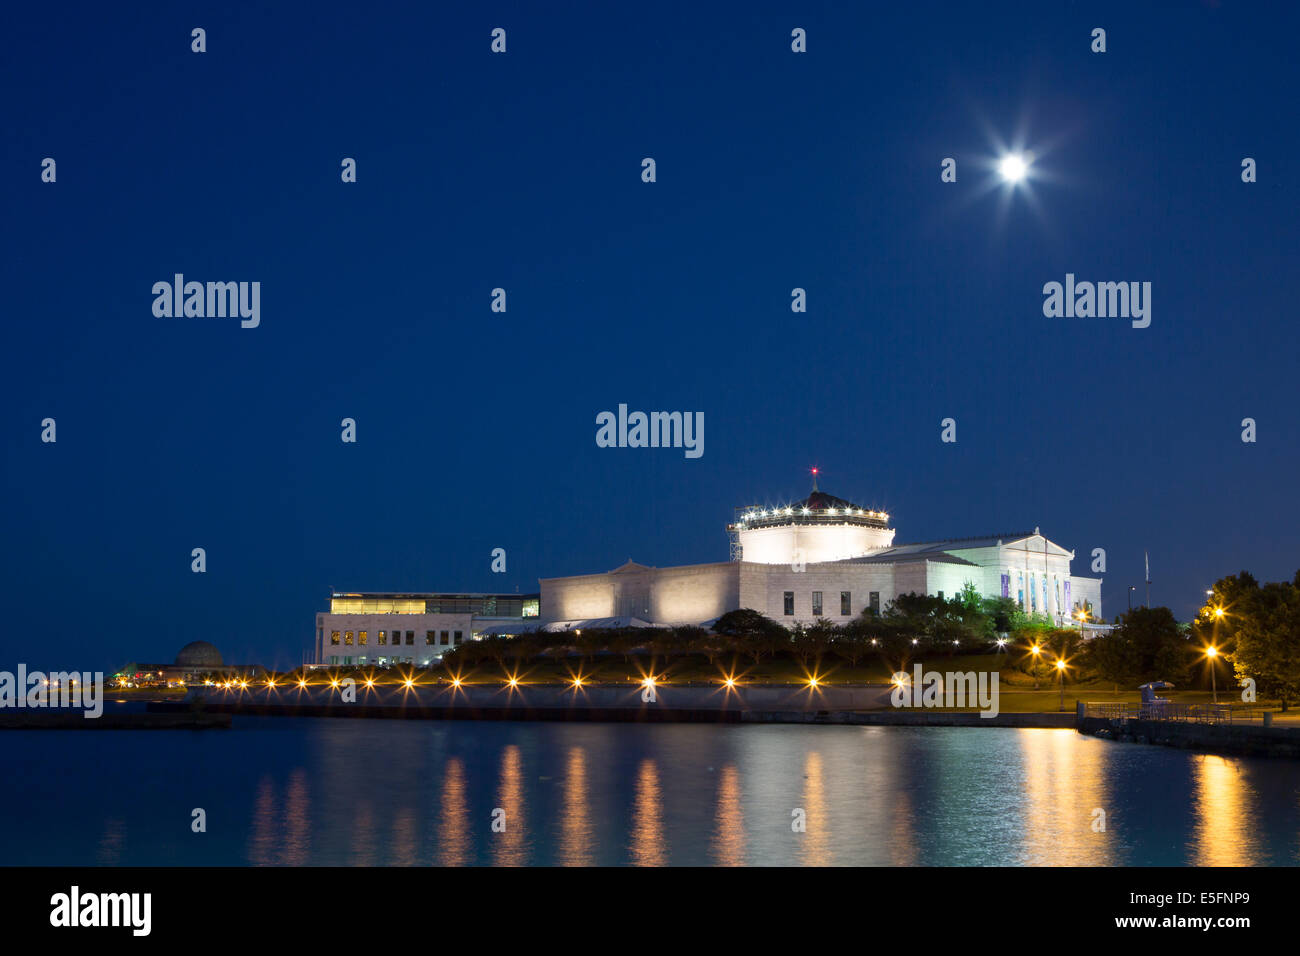 Shedd Aquariuam and Adler Planetarium at dusk over the water in Chicago, Illinois, USA - Stock Image